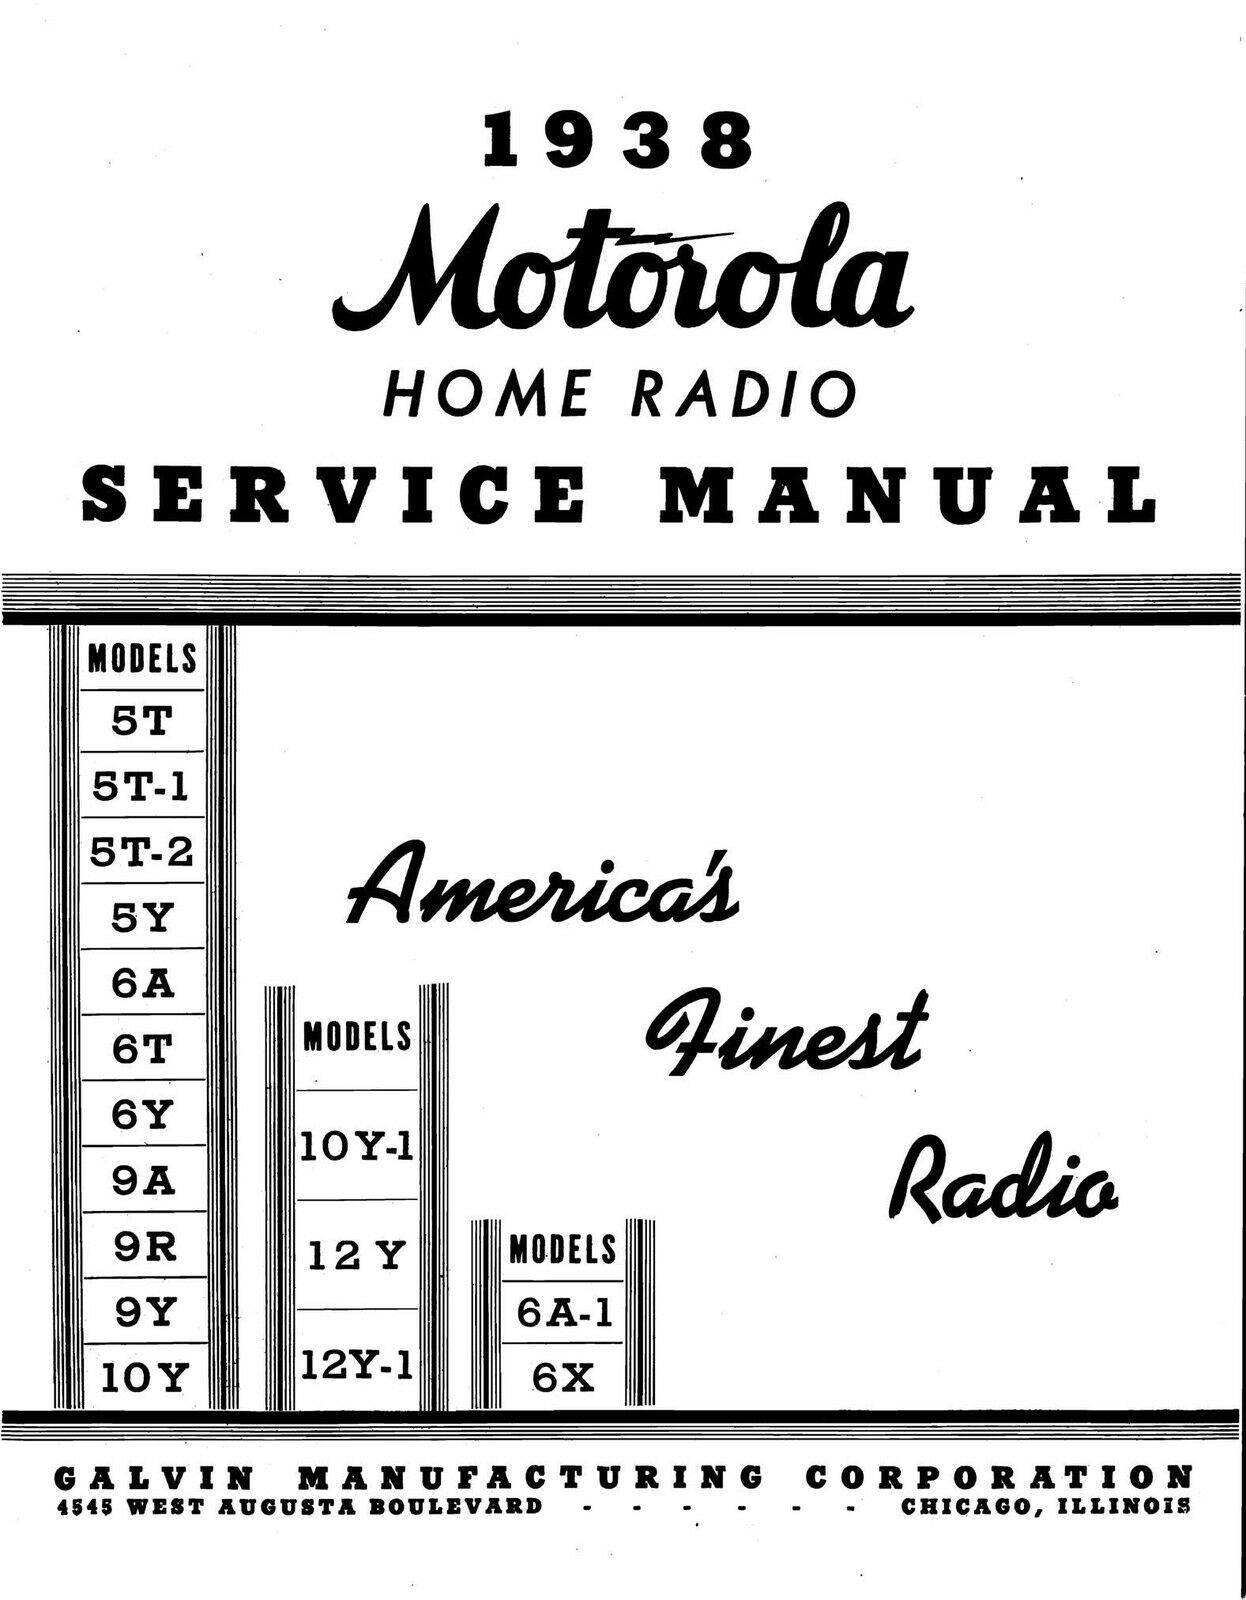 Motorola Schematics, Farm, Radio, Auto, Service Manuals 1937 - 1942 * CDROM  1 of 1FREE Shipping See More